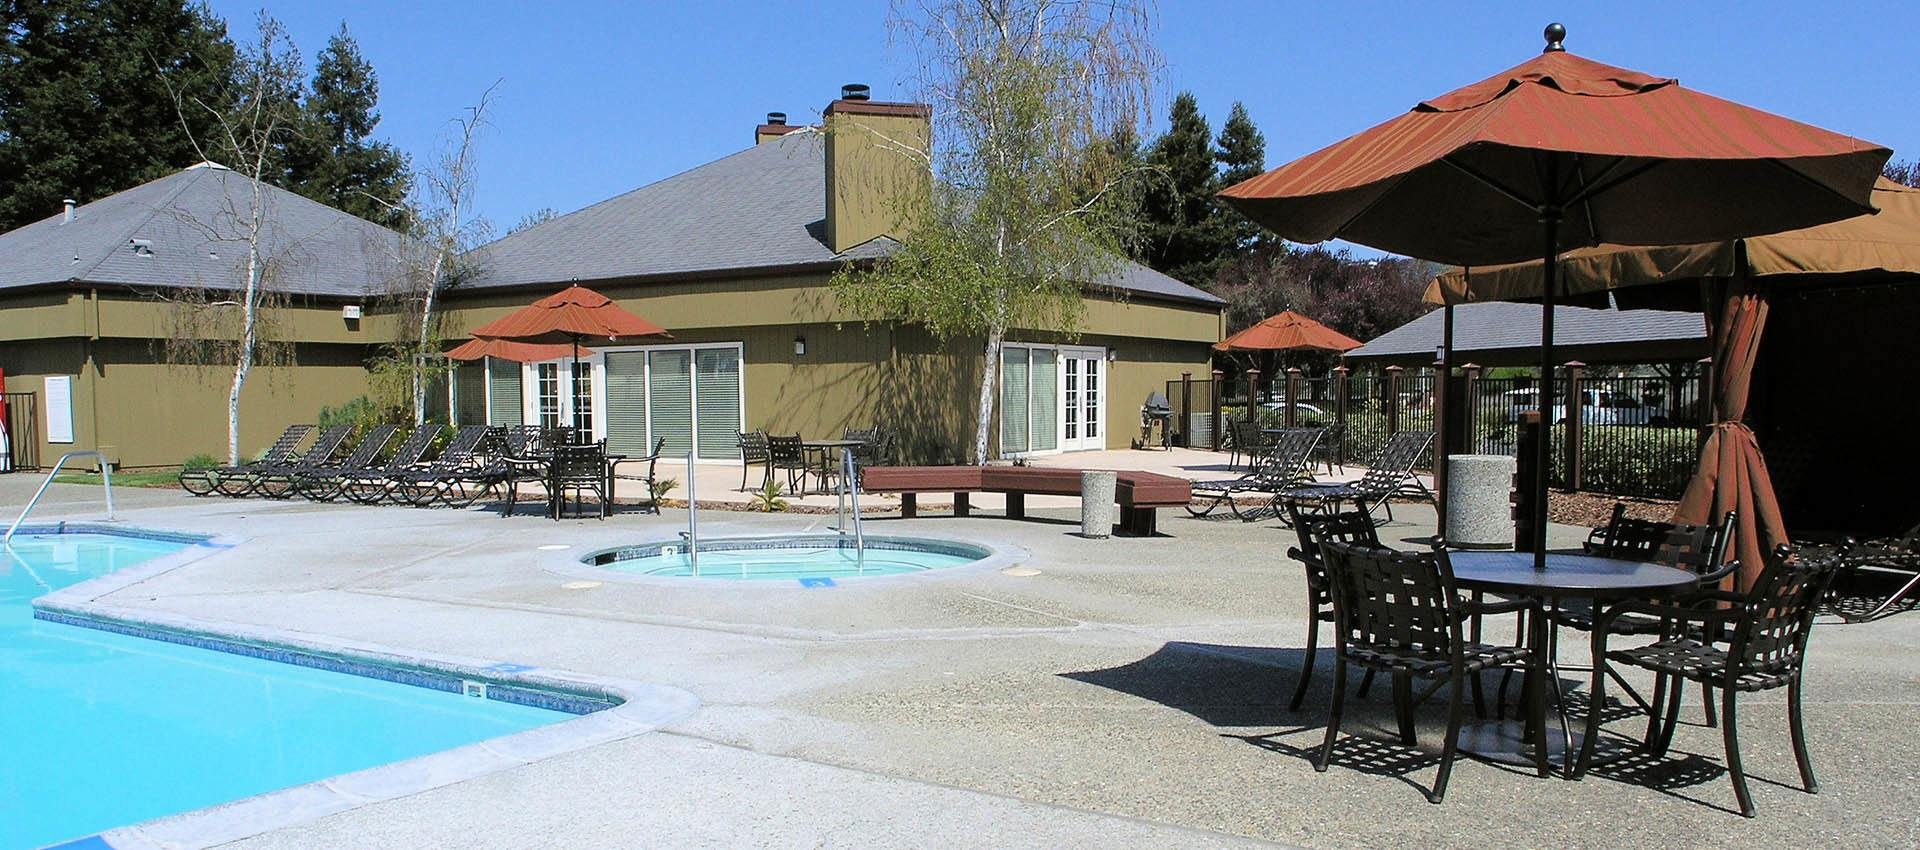 Pool house at apartments in Rohnert Park, CA